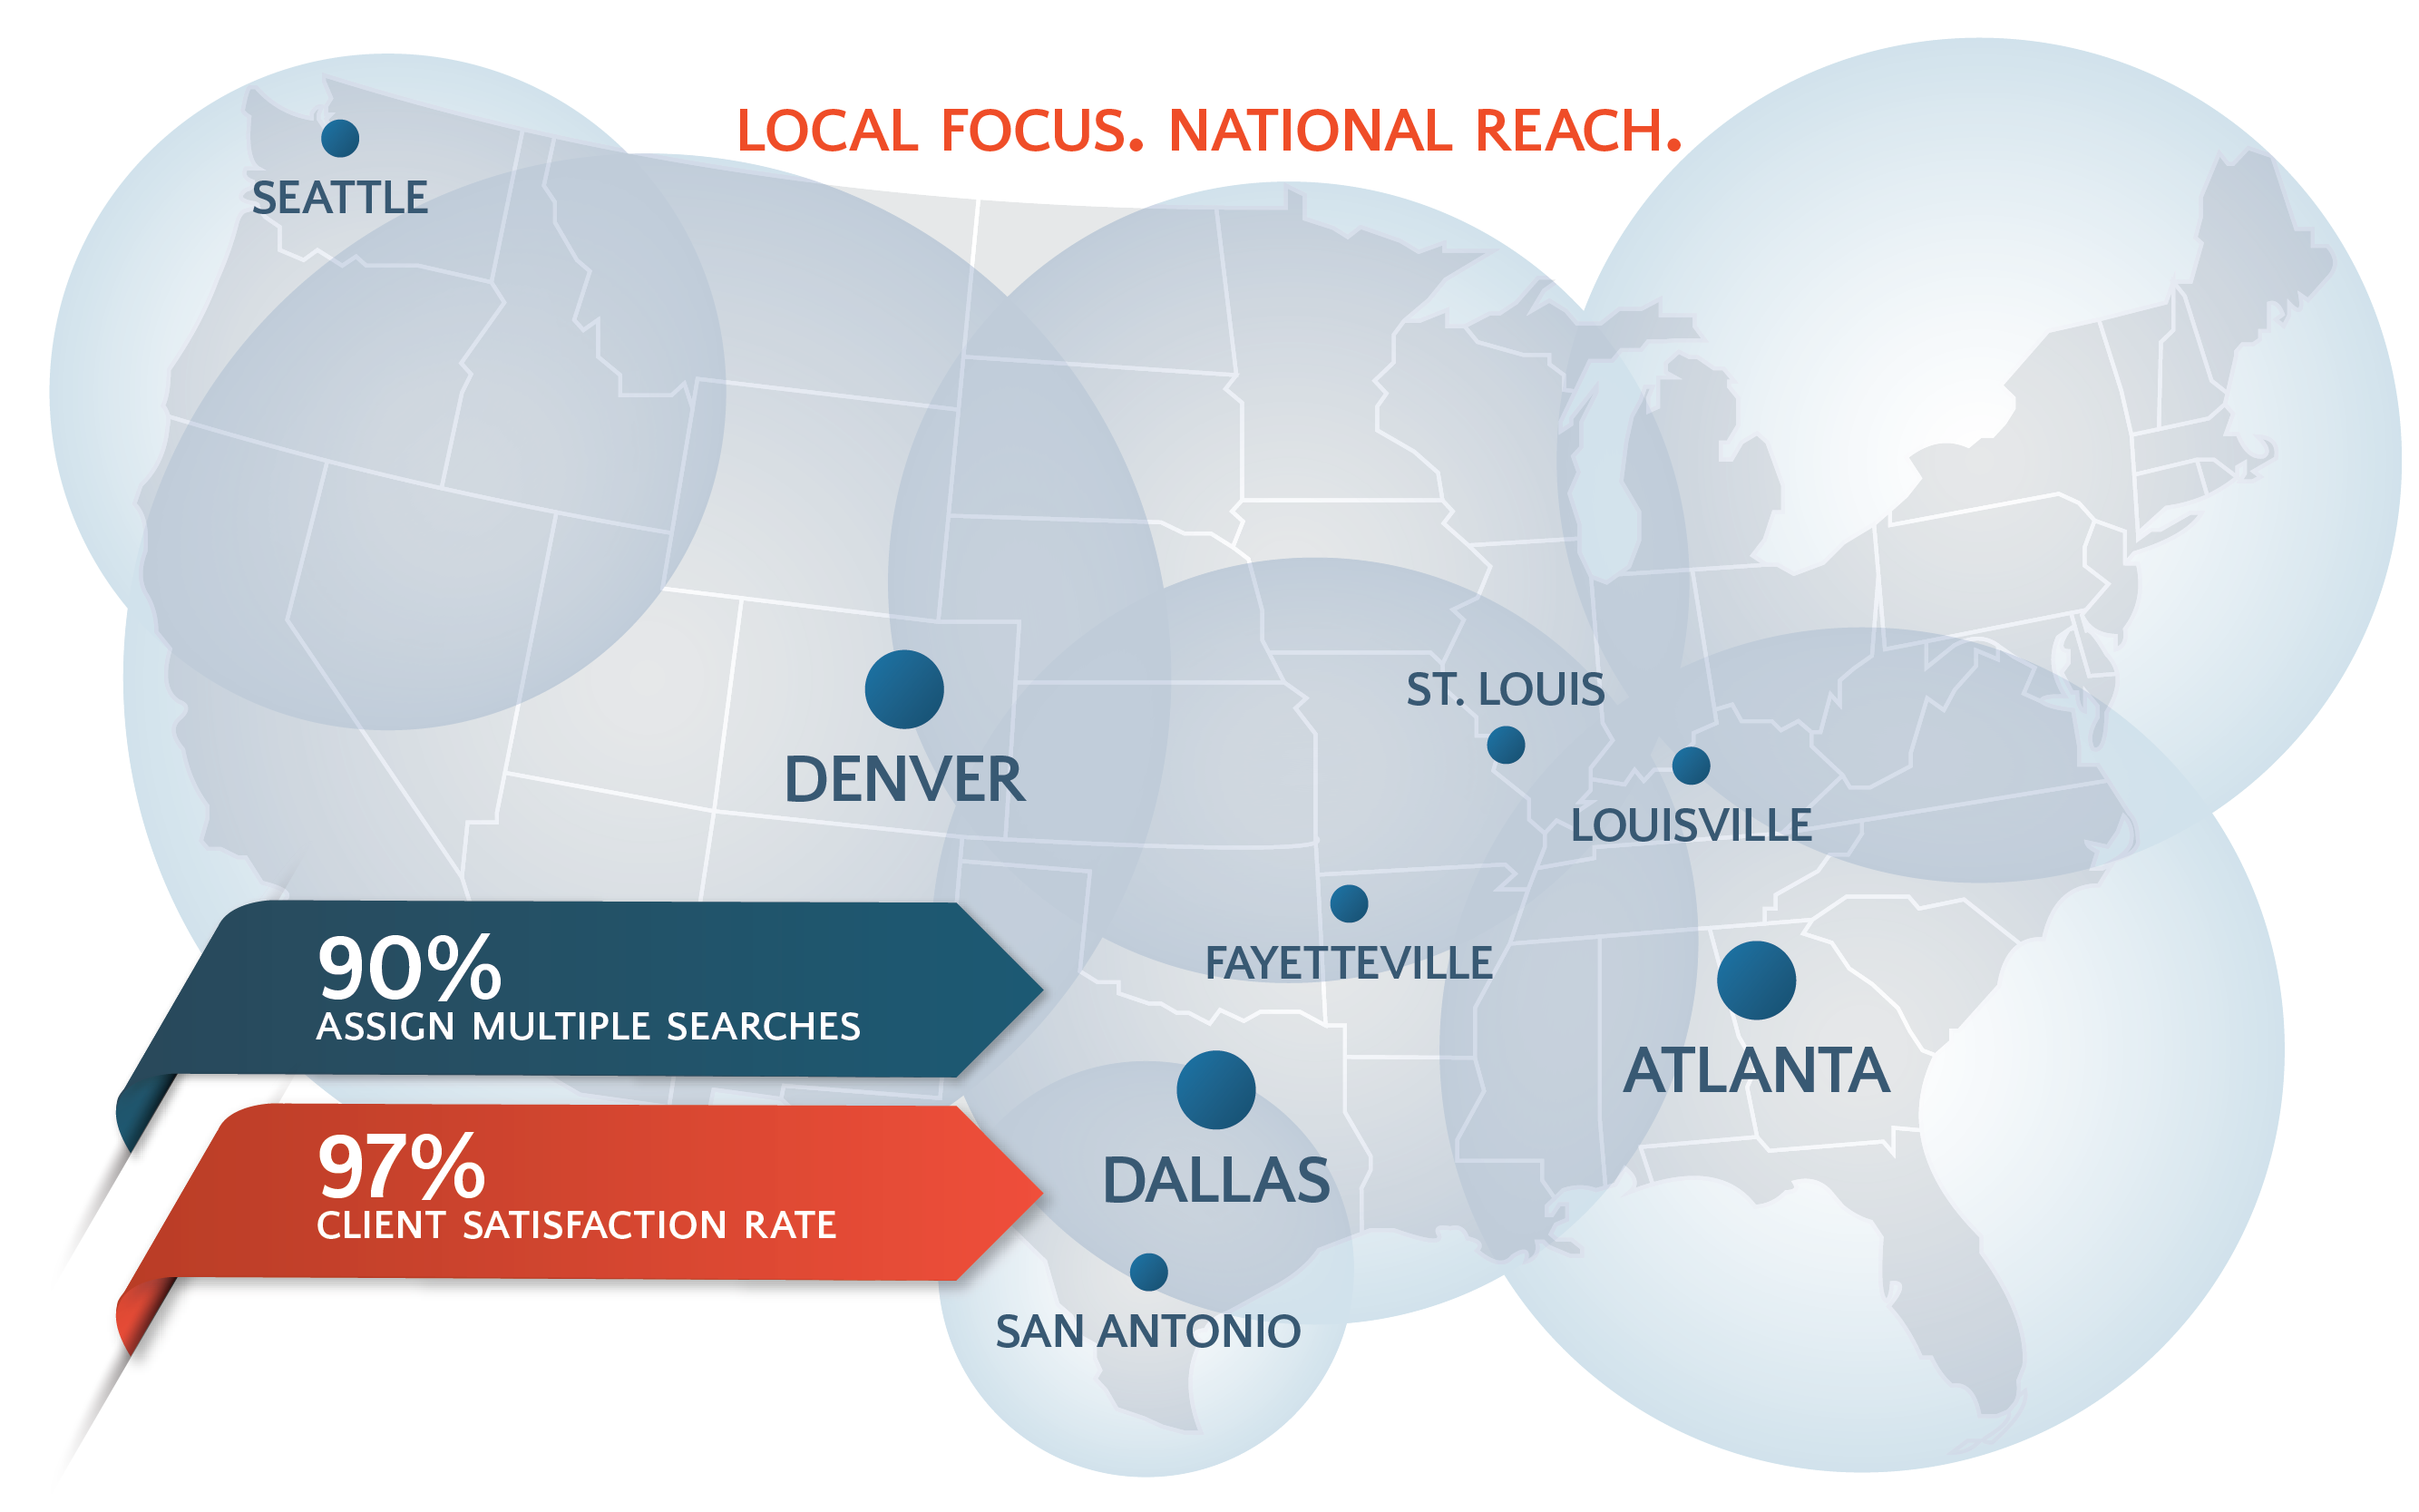 Discover the Difference That Creates Strong Relationships Coast-To-Coast